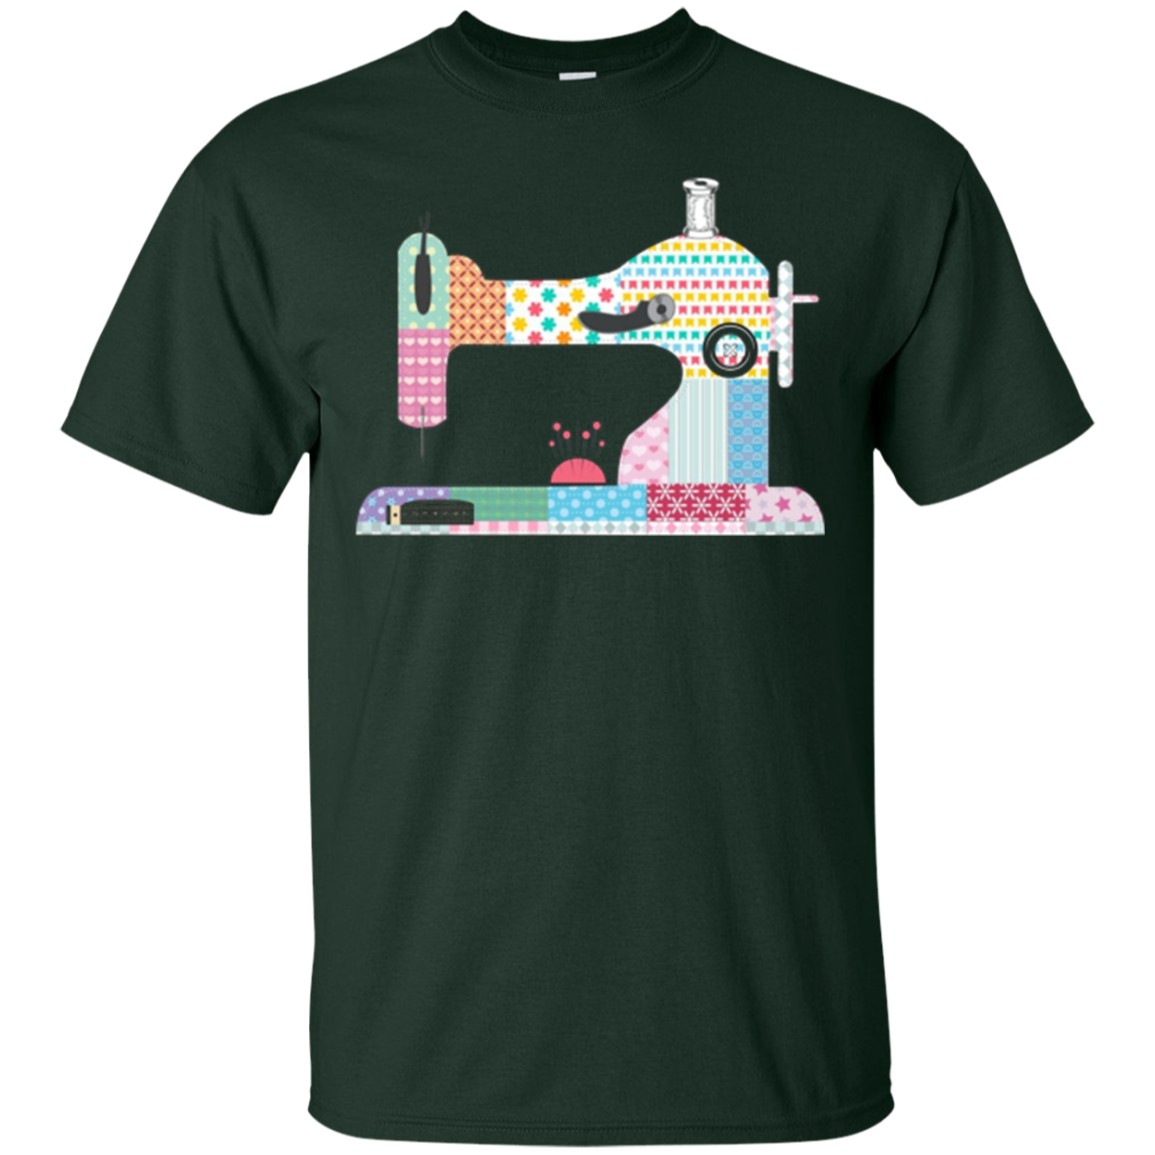 Sewing Machine I Love Quilting Sewing Shirt for Mom Grandma